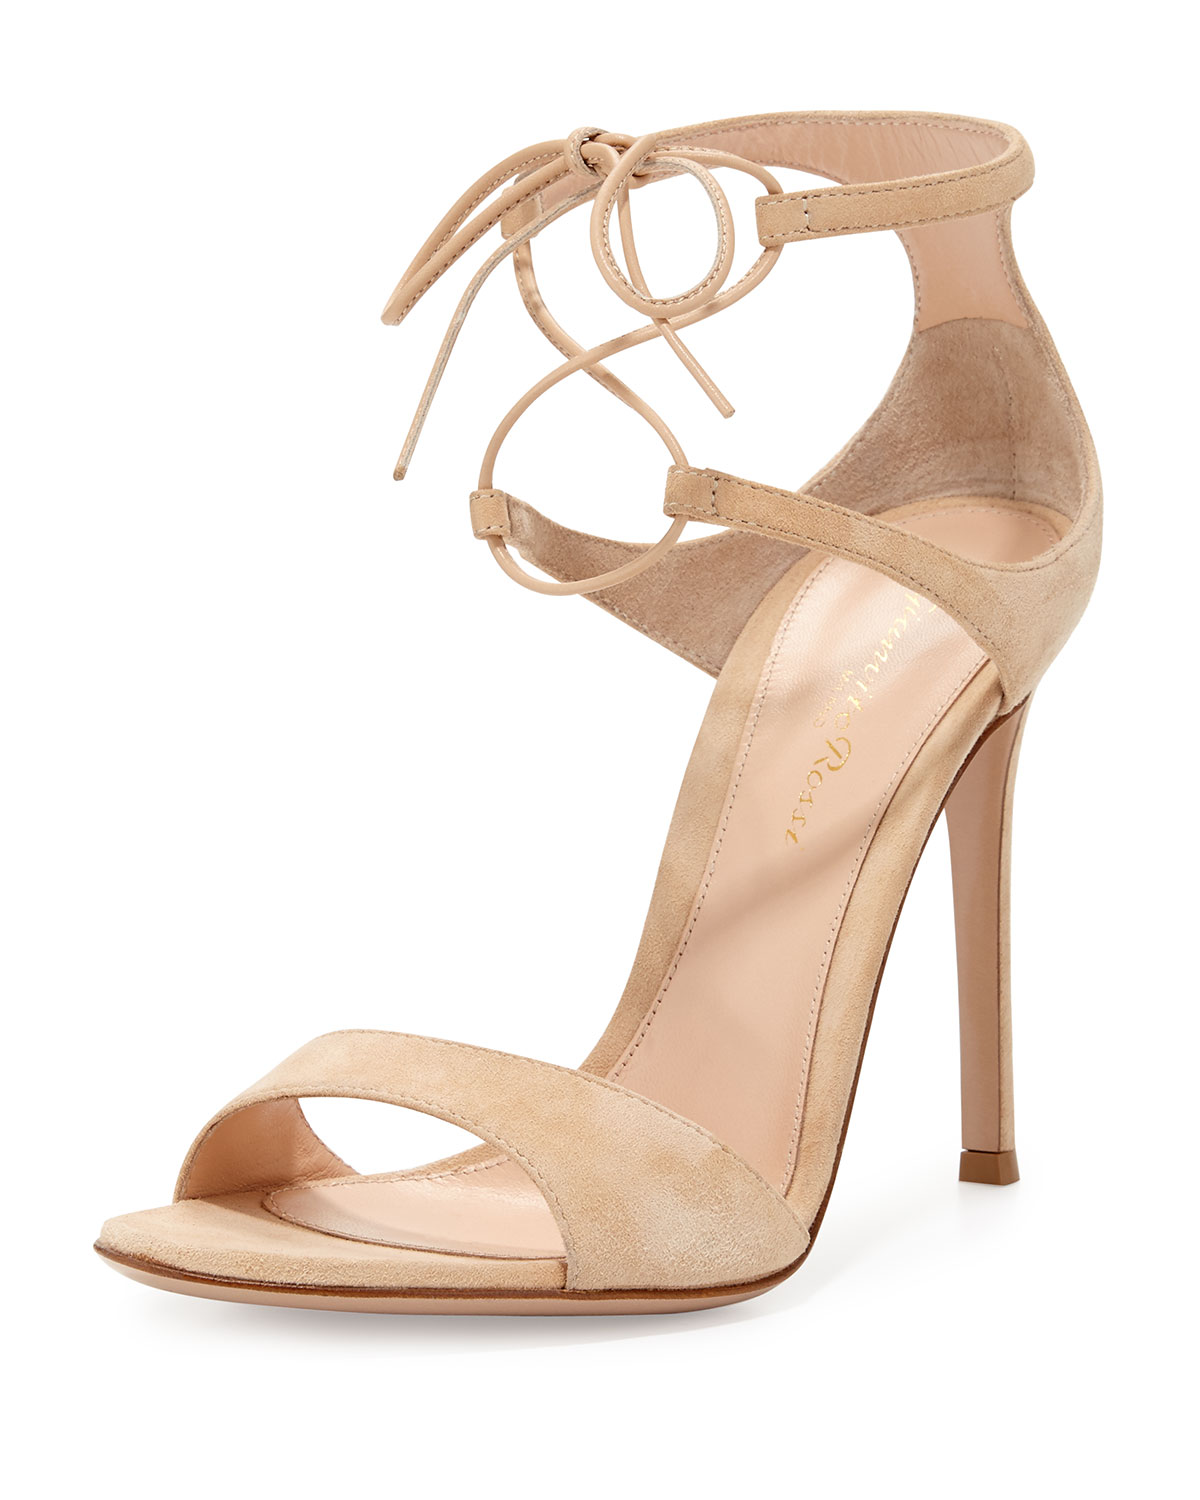 e4c3cad580 Gianvito Rossi Suede Double Ankle-Wrap Sandal, Nude | Neiman Marcus